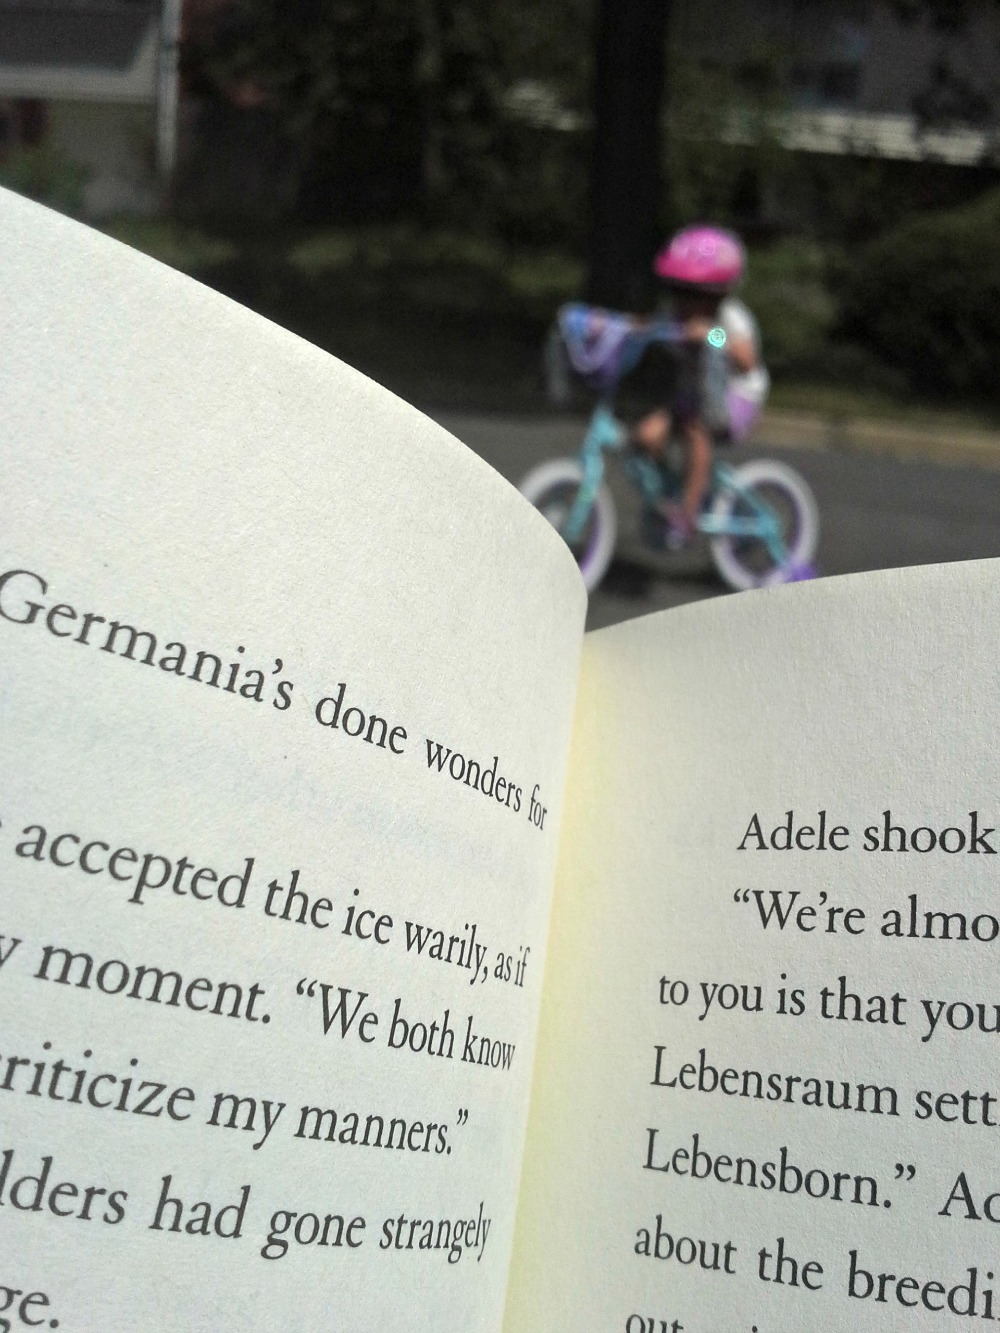 New bikes for the kids have given me a good excuse to sit on the curb while reading a book. (Pictured here: wolf by wolf by Ryan Graudin)